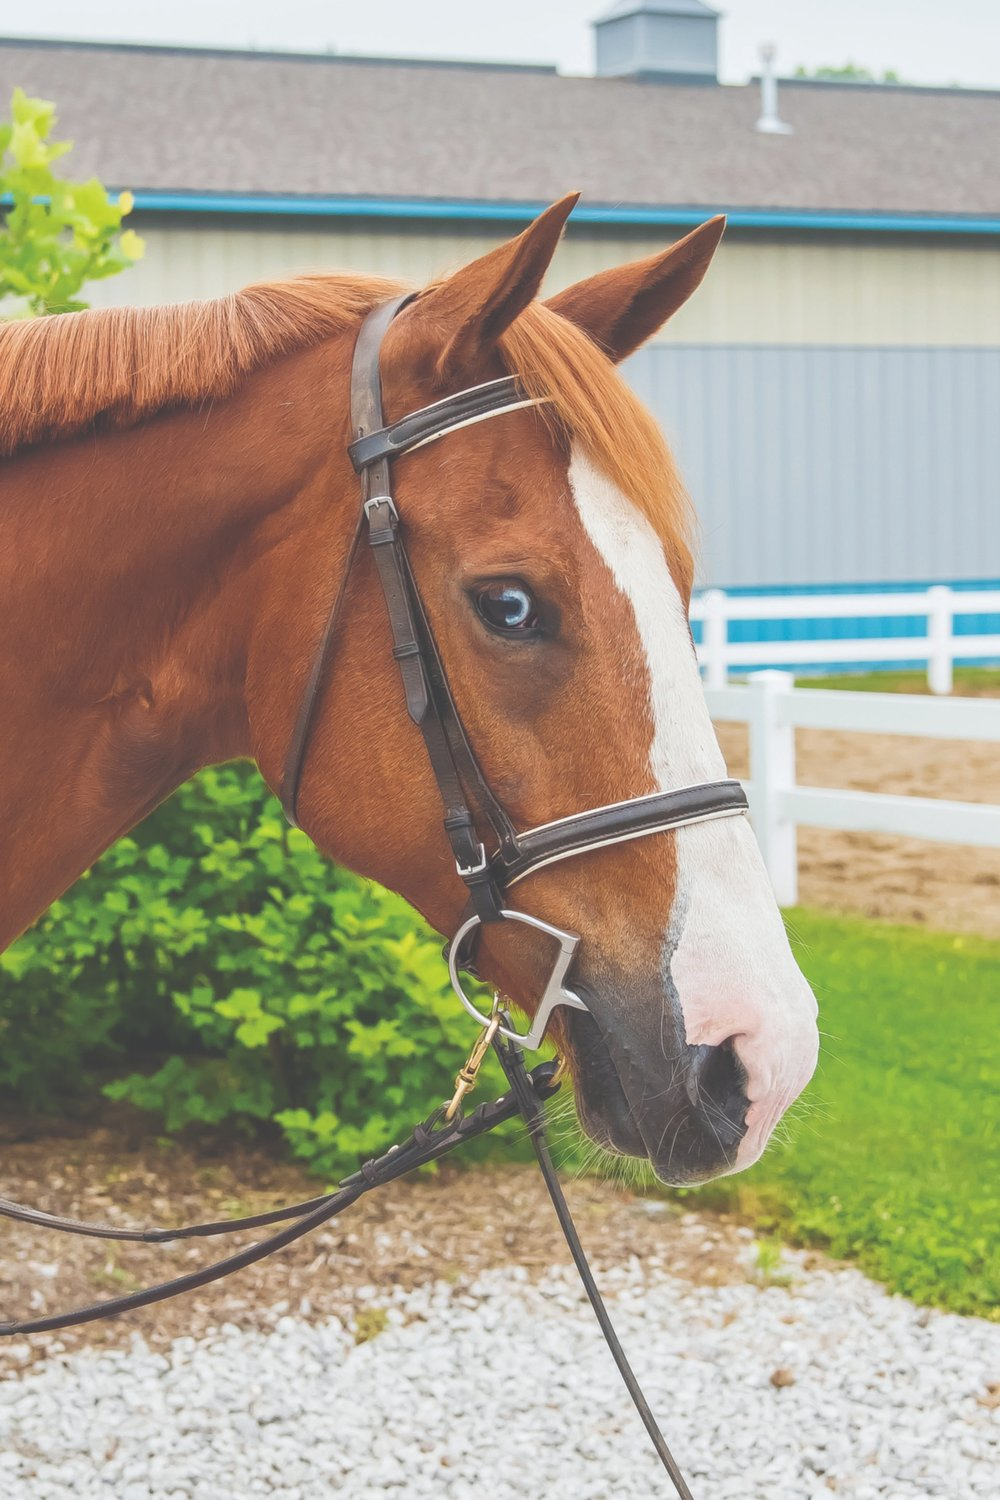 Dakota - I really enjoy helping independent riders with my sloooow jog trot. I'm a chestnut Quarterhorse gelding, and if you look closely you'll see that I have one half-blue eye!